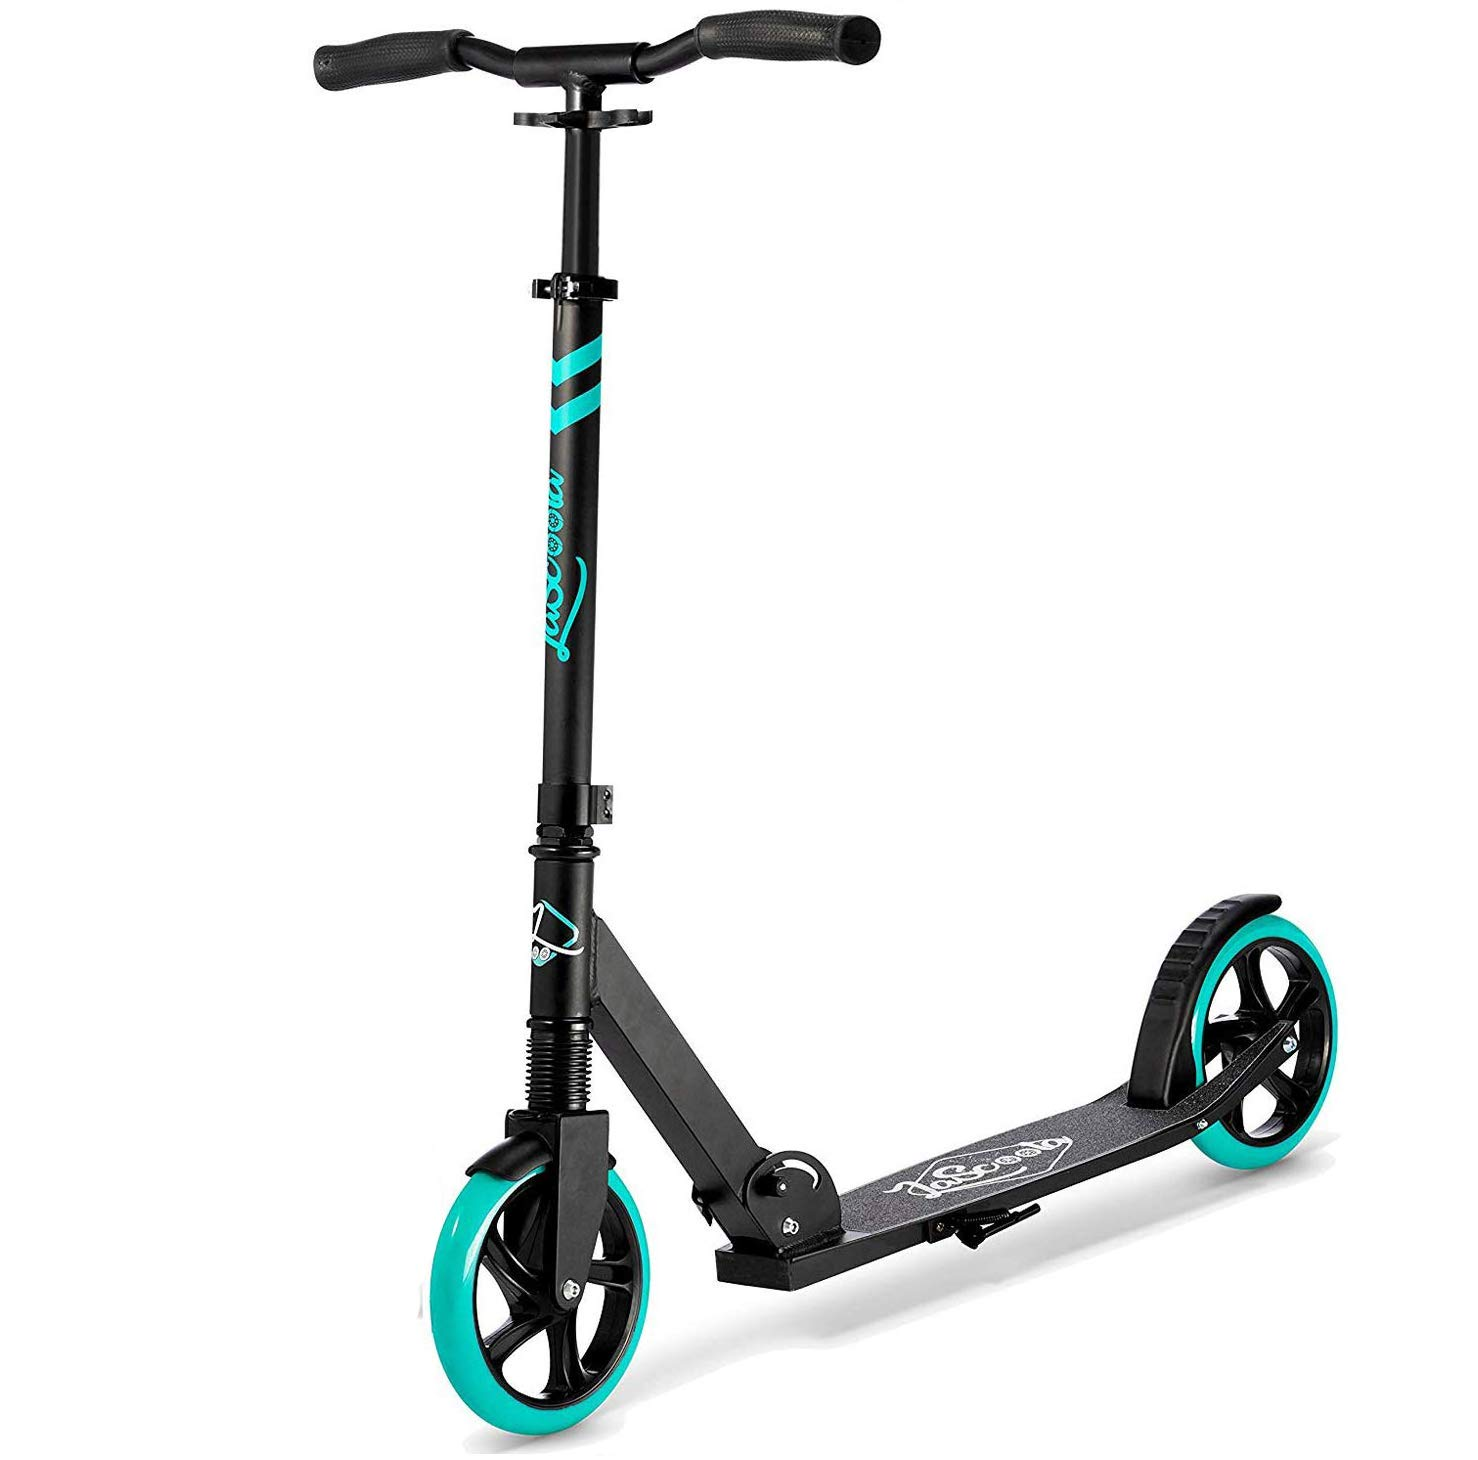 Lascoota Scooters for Kids 8 Years and up - Featuring Quick-Release Folding System - Dual Suspension System + Scooter Shoulder Strap 7.9'' Big Wheels Great Scooters for Adults and Teens by Lascoota